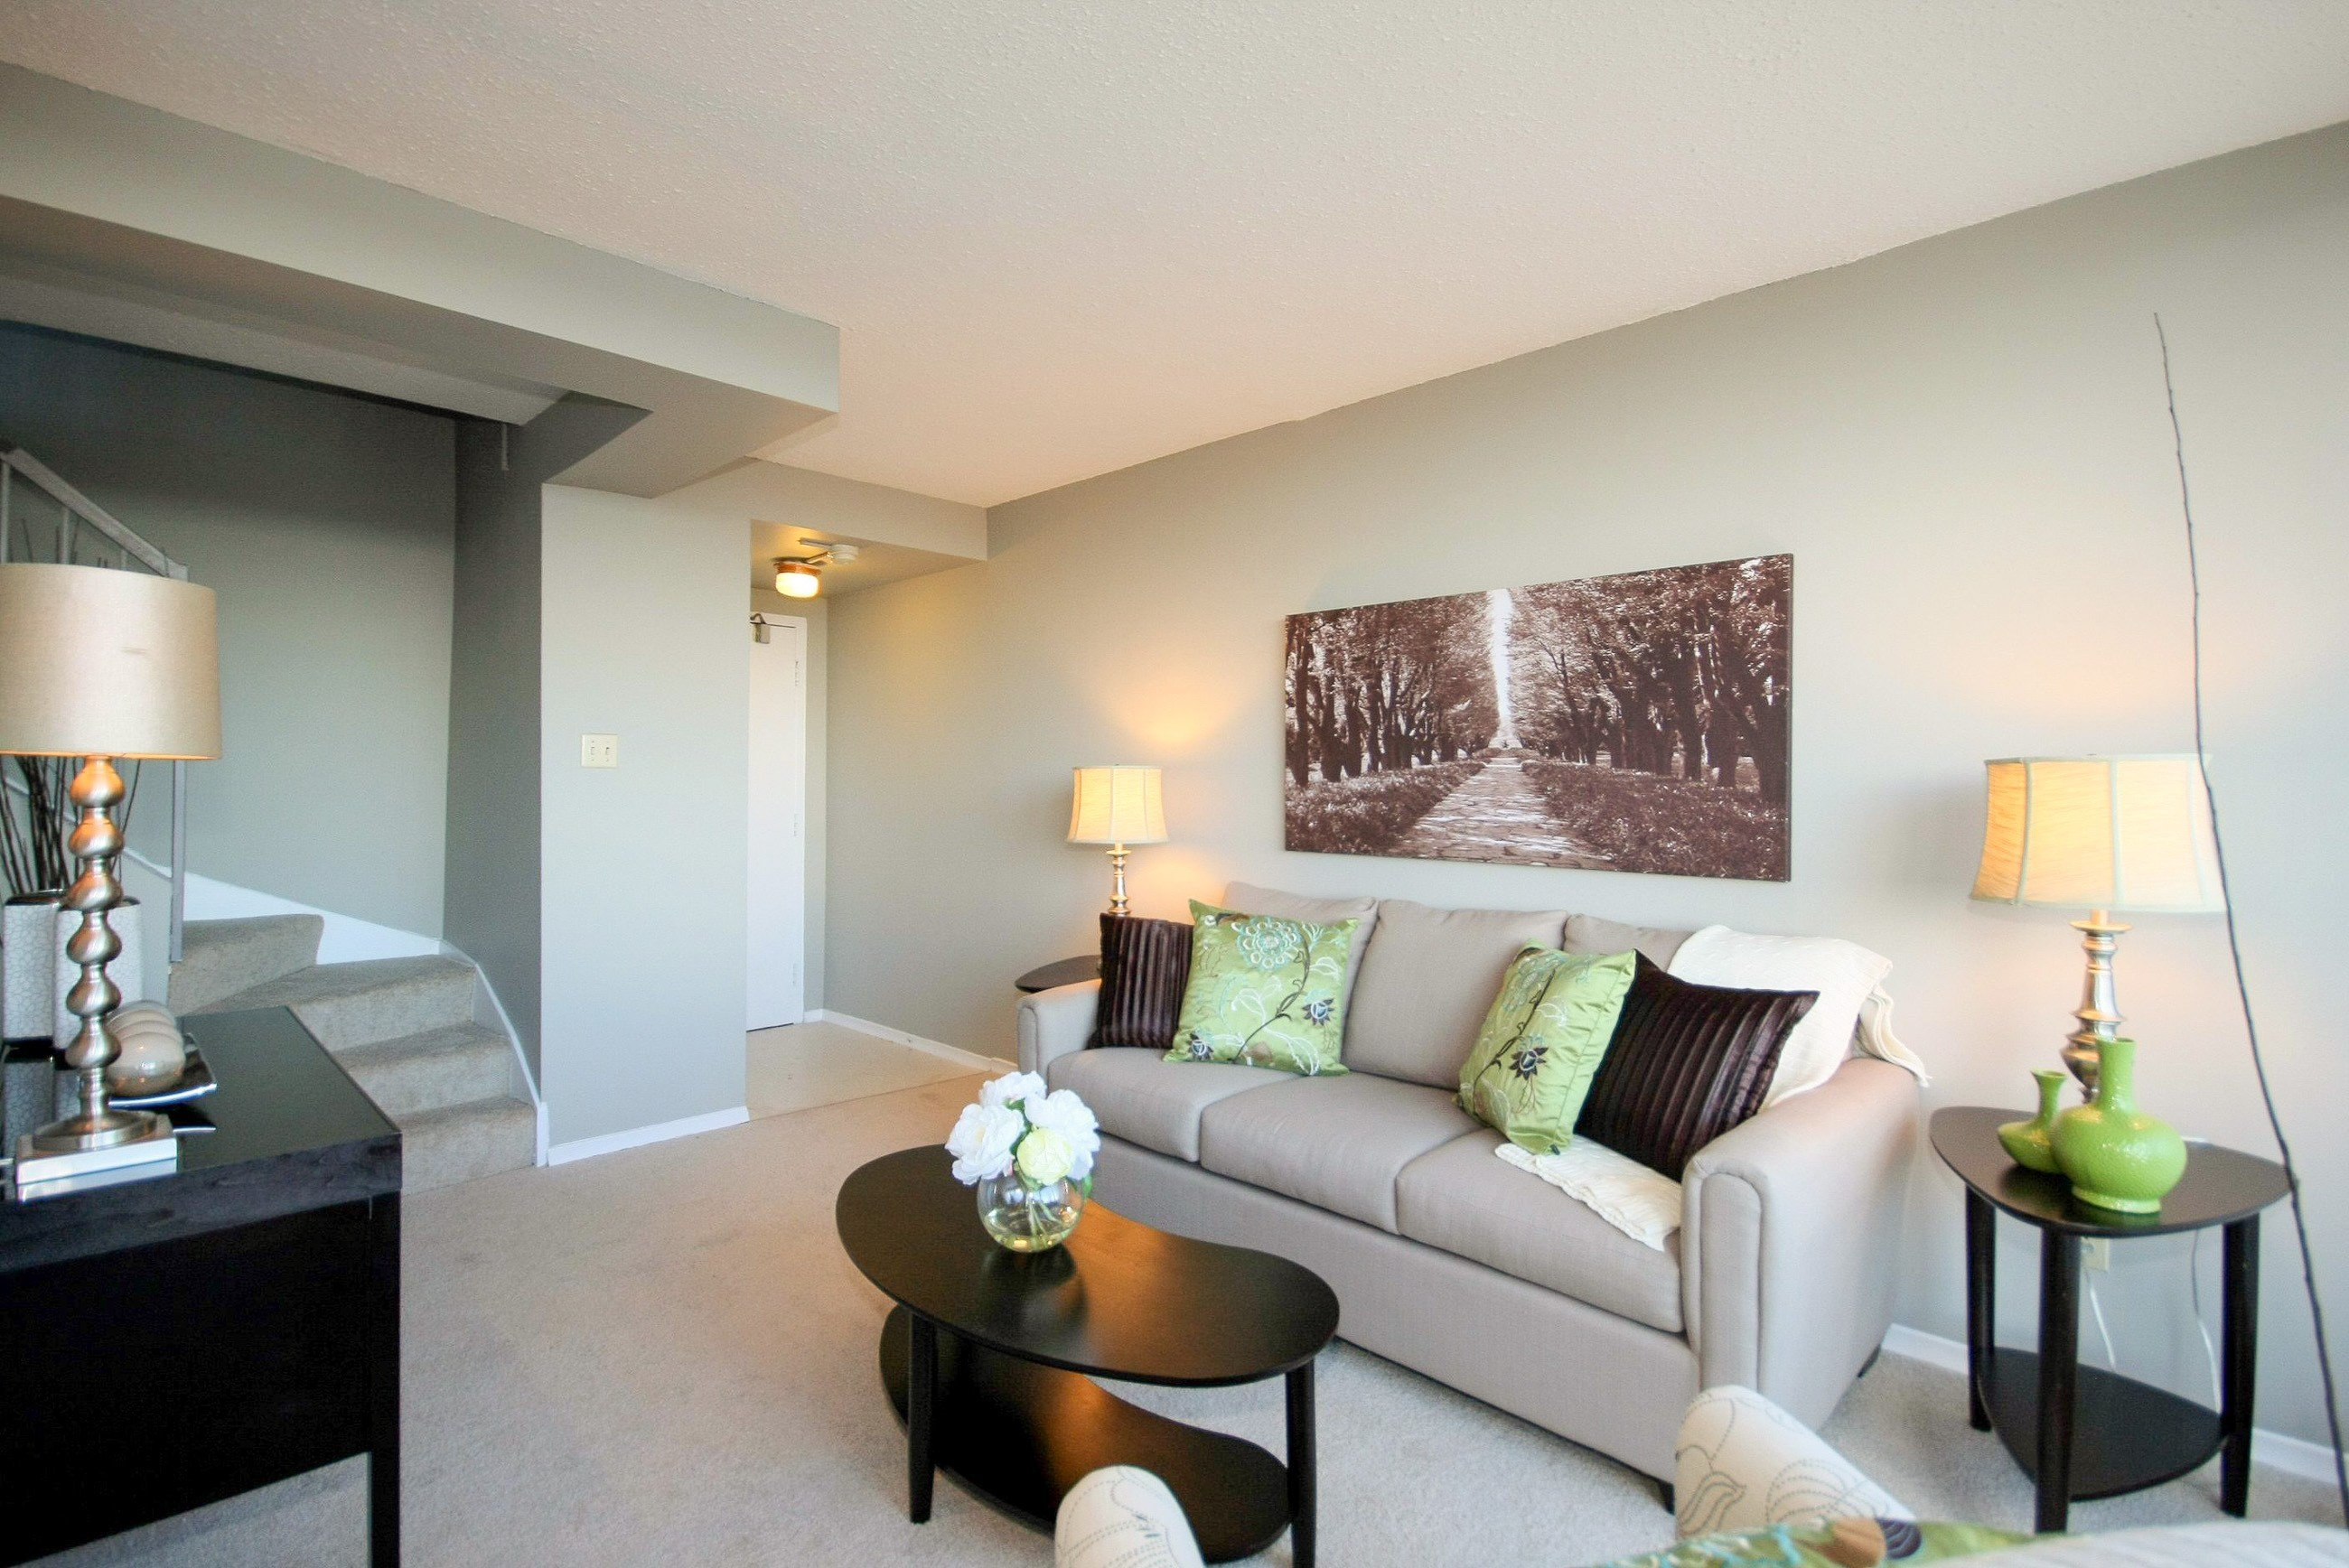 Best 50 Mooregate Crescent Kitchener On N2M 5G6 3 Bedroom Apartment For Rent Padmapper With Pictures